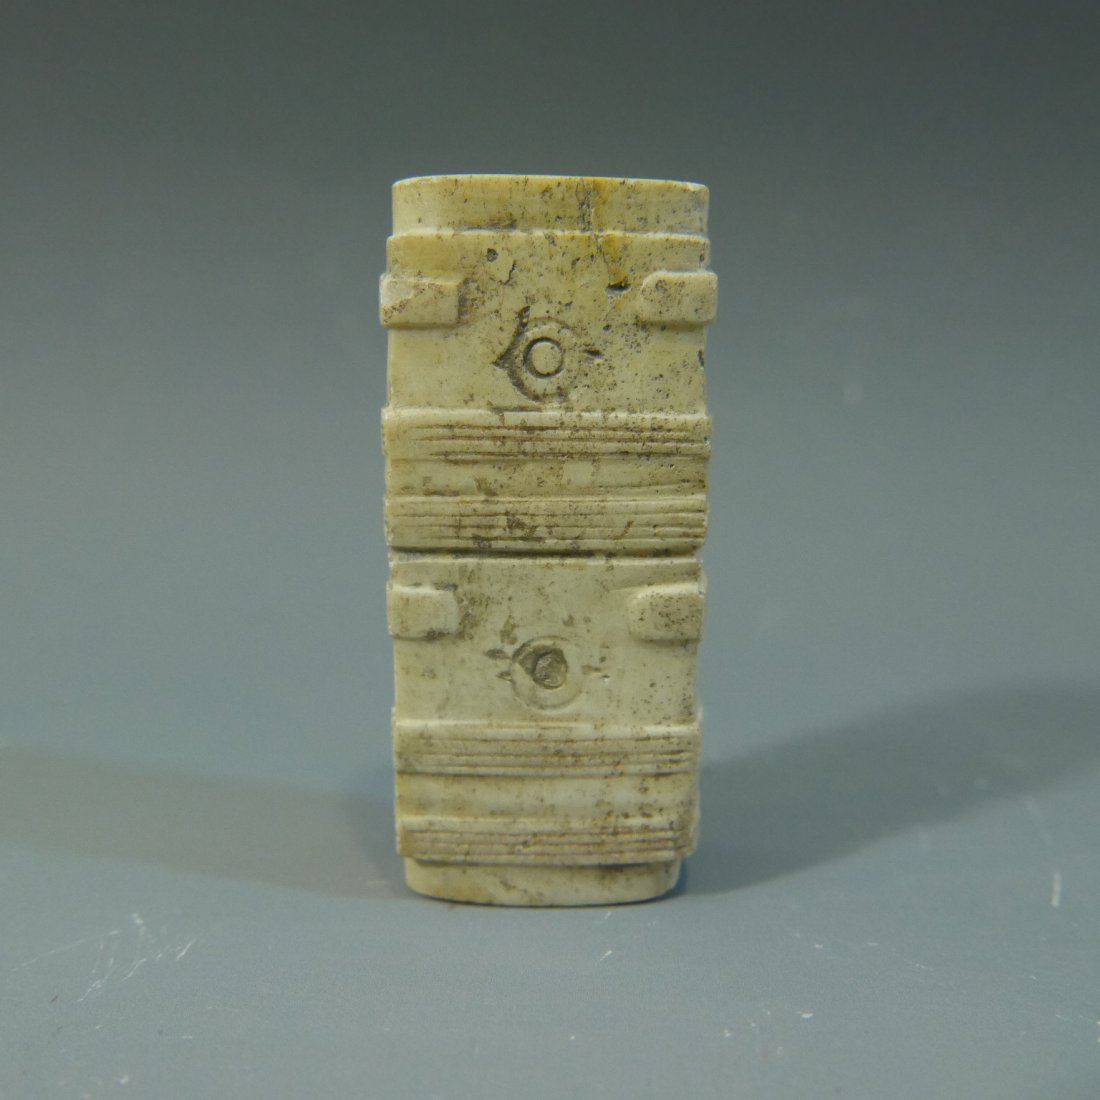 ANTIQUE CHINESE CARVED JADE CONG TUBE NEOLITHIC PERIOD